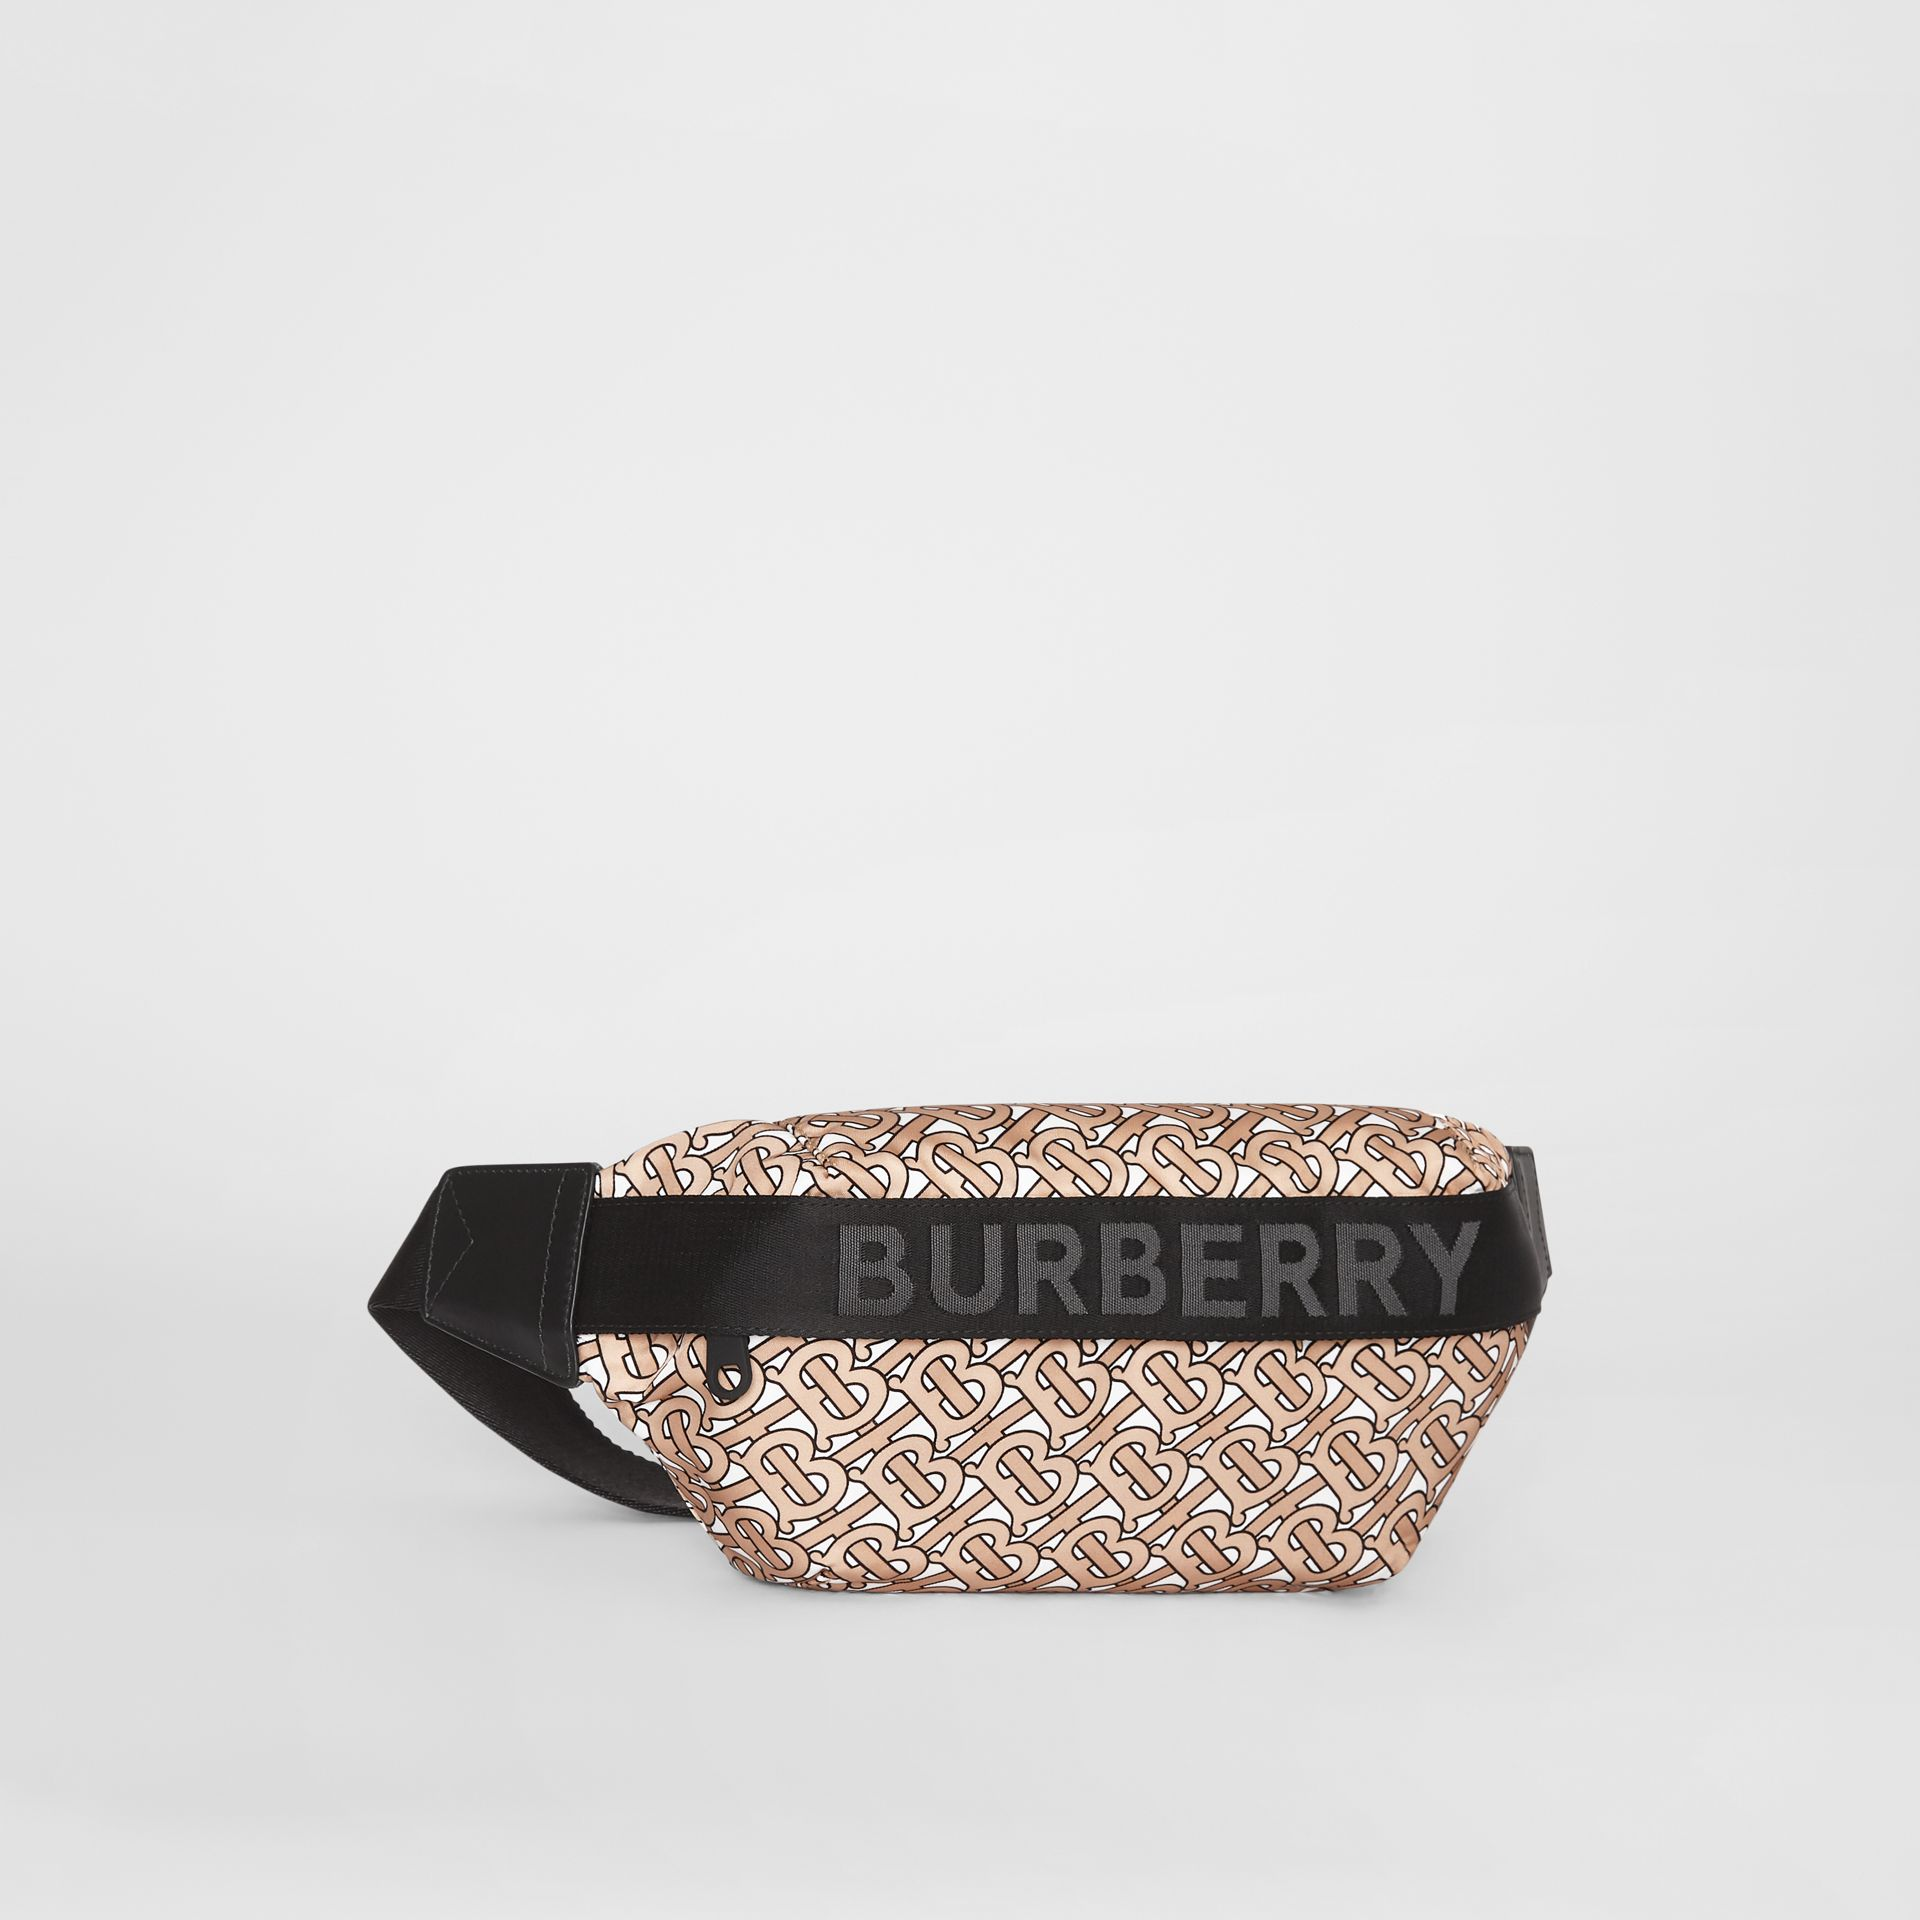 Medium Monogram Print Bum Bag in Beige | Burberry - gallery image 8